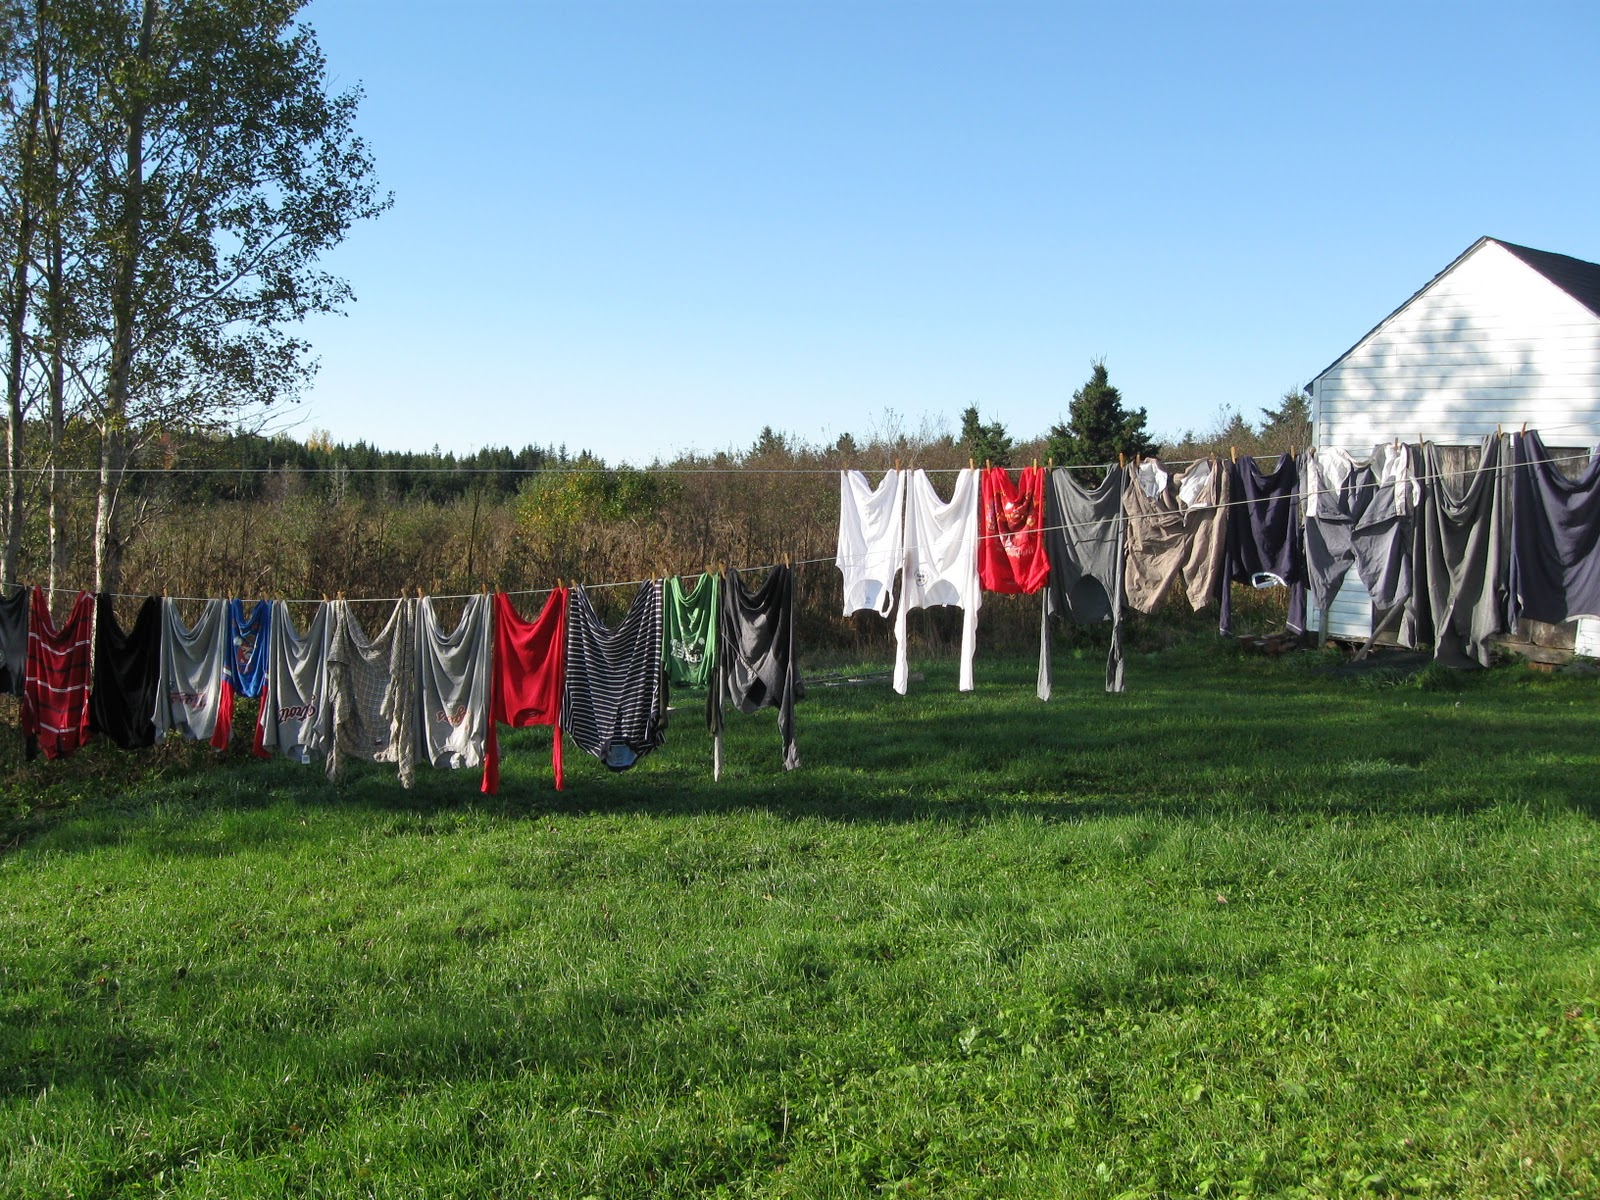 Hanging your clothes under sun OR using laundry dryer | SiOWfa15 ...